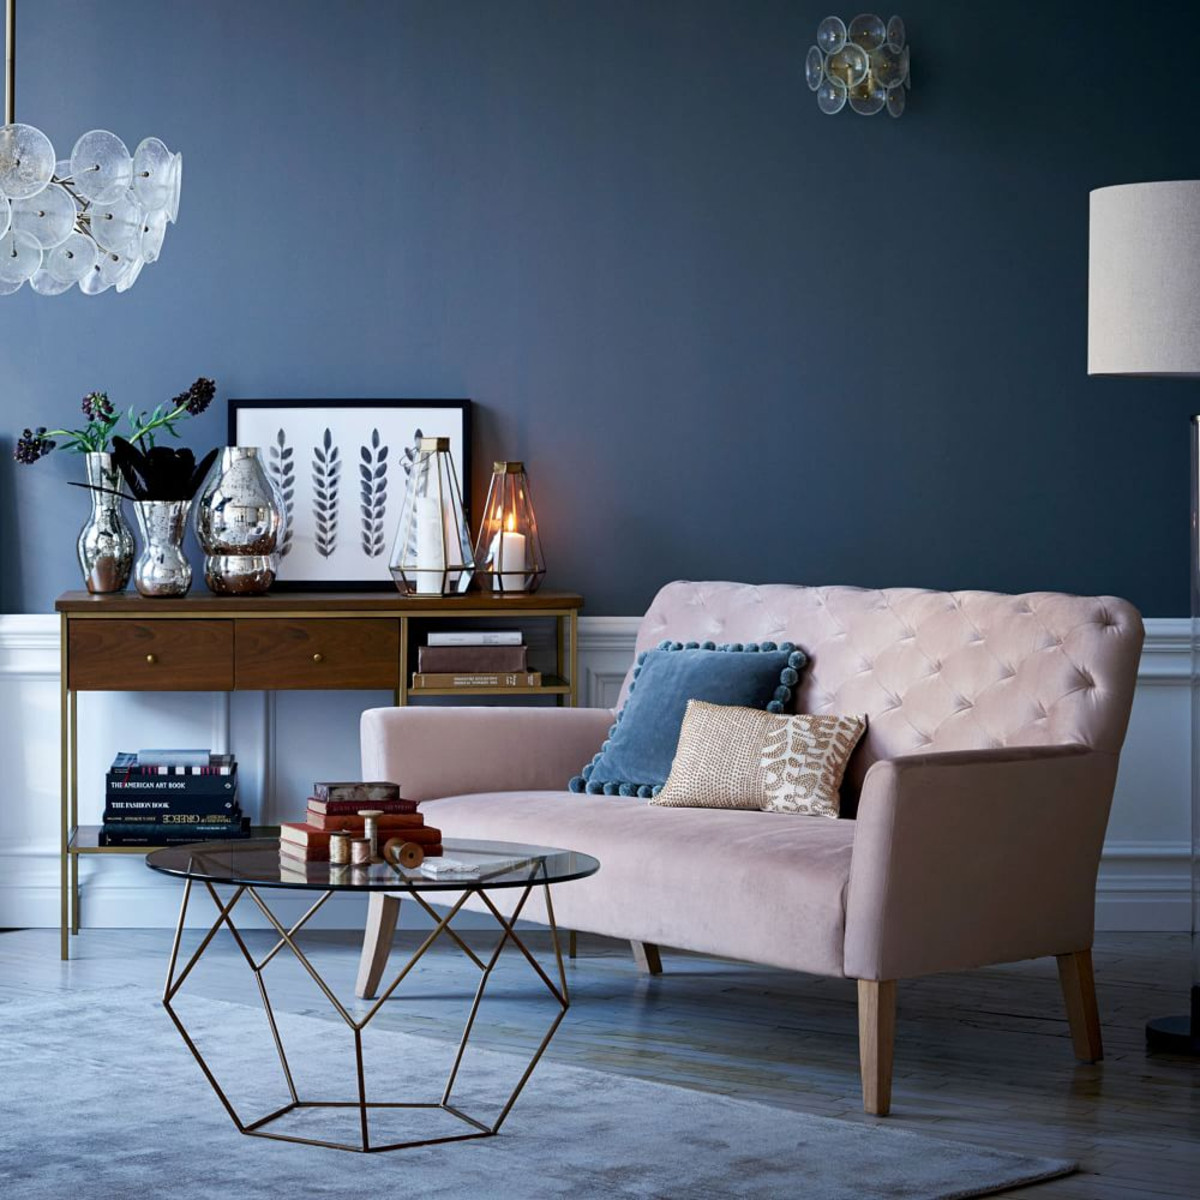 Mood Board Best Ways to Use Pale Pink in Your Home Decor 3  Mood Board: Best Ways to Use Pale Pink in Your Home Decor Mood Board Best Ways to Use Pale Pink in Your Home Decor 3